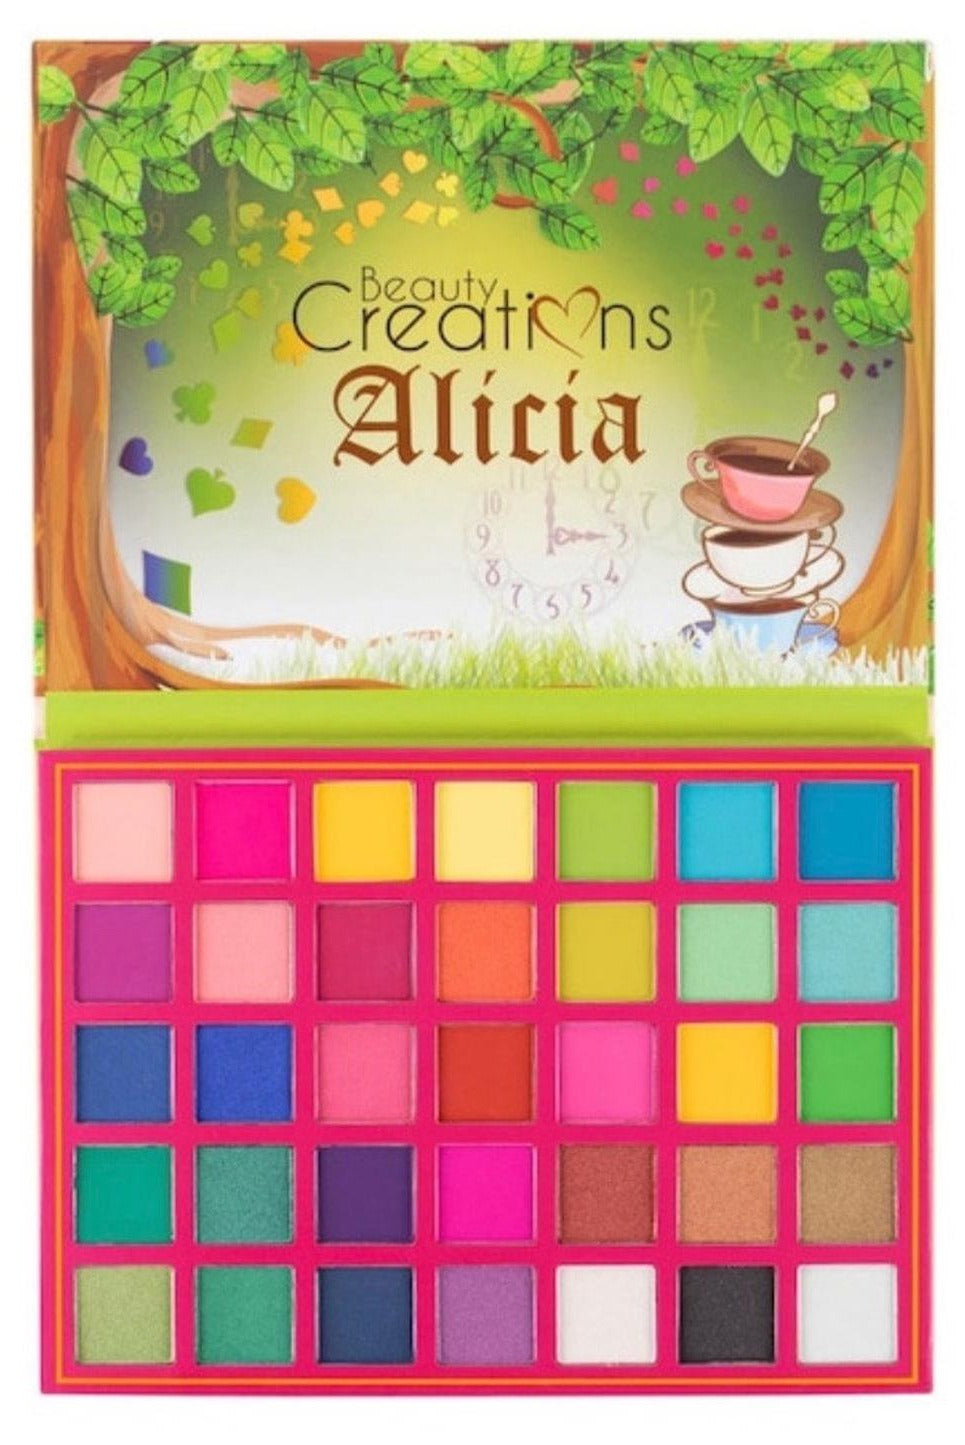 Alicia palette Beauty Creations